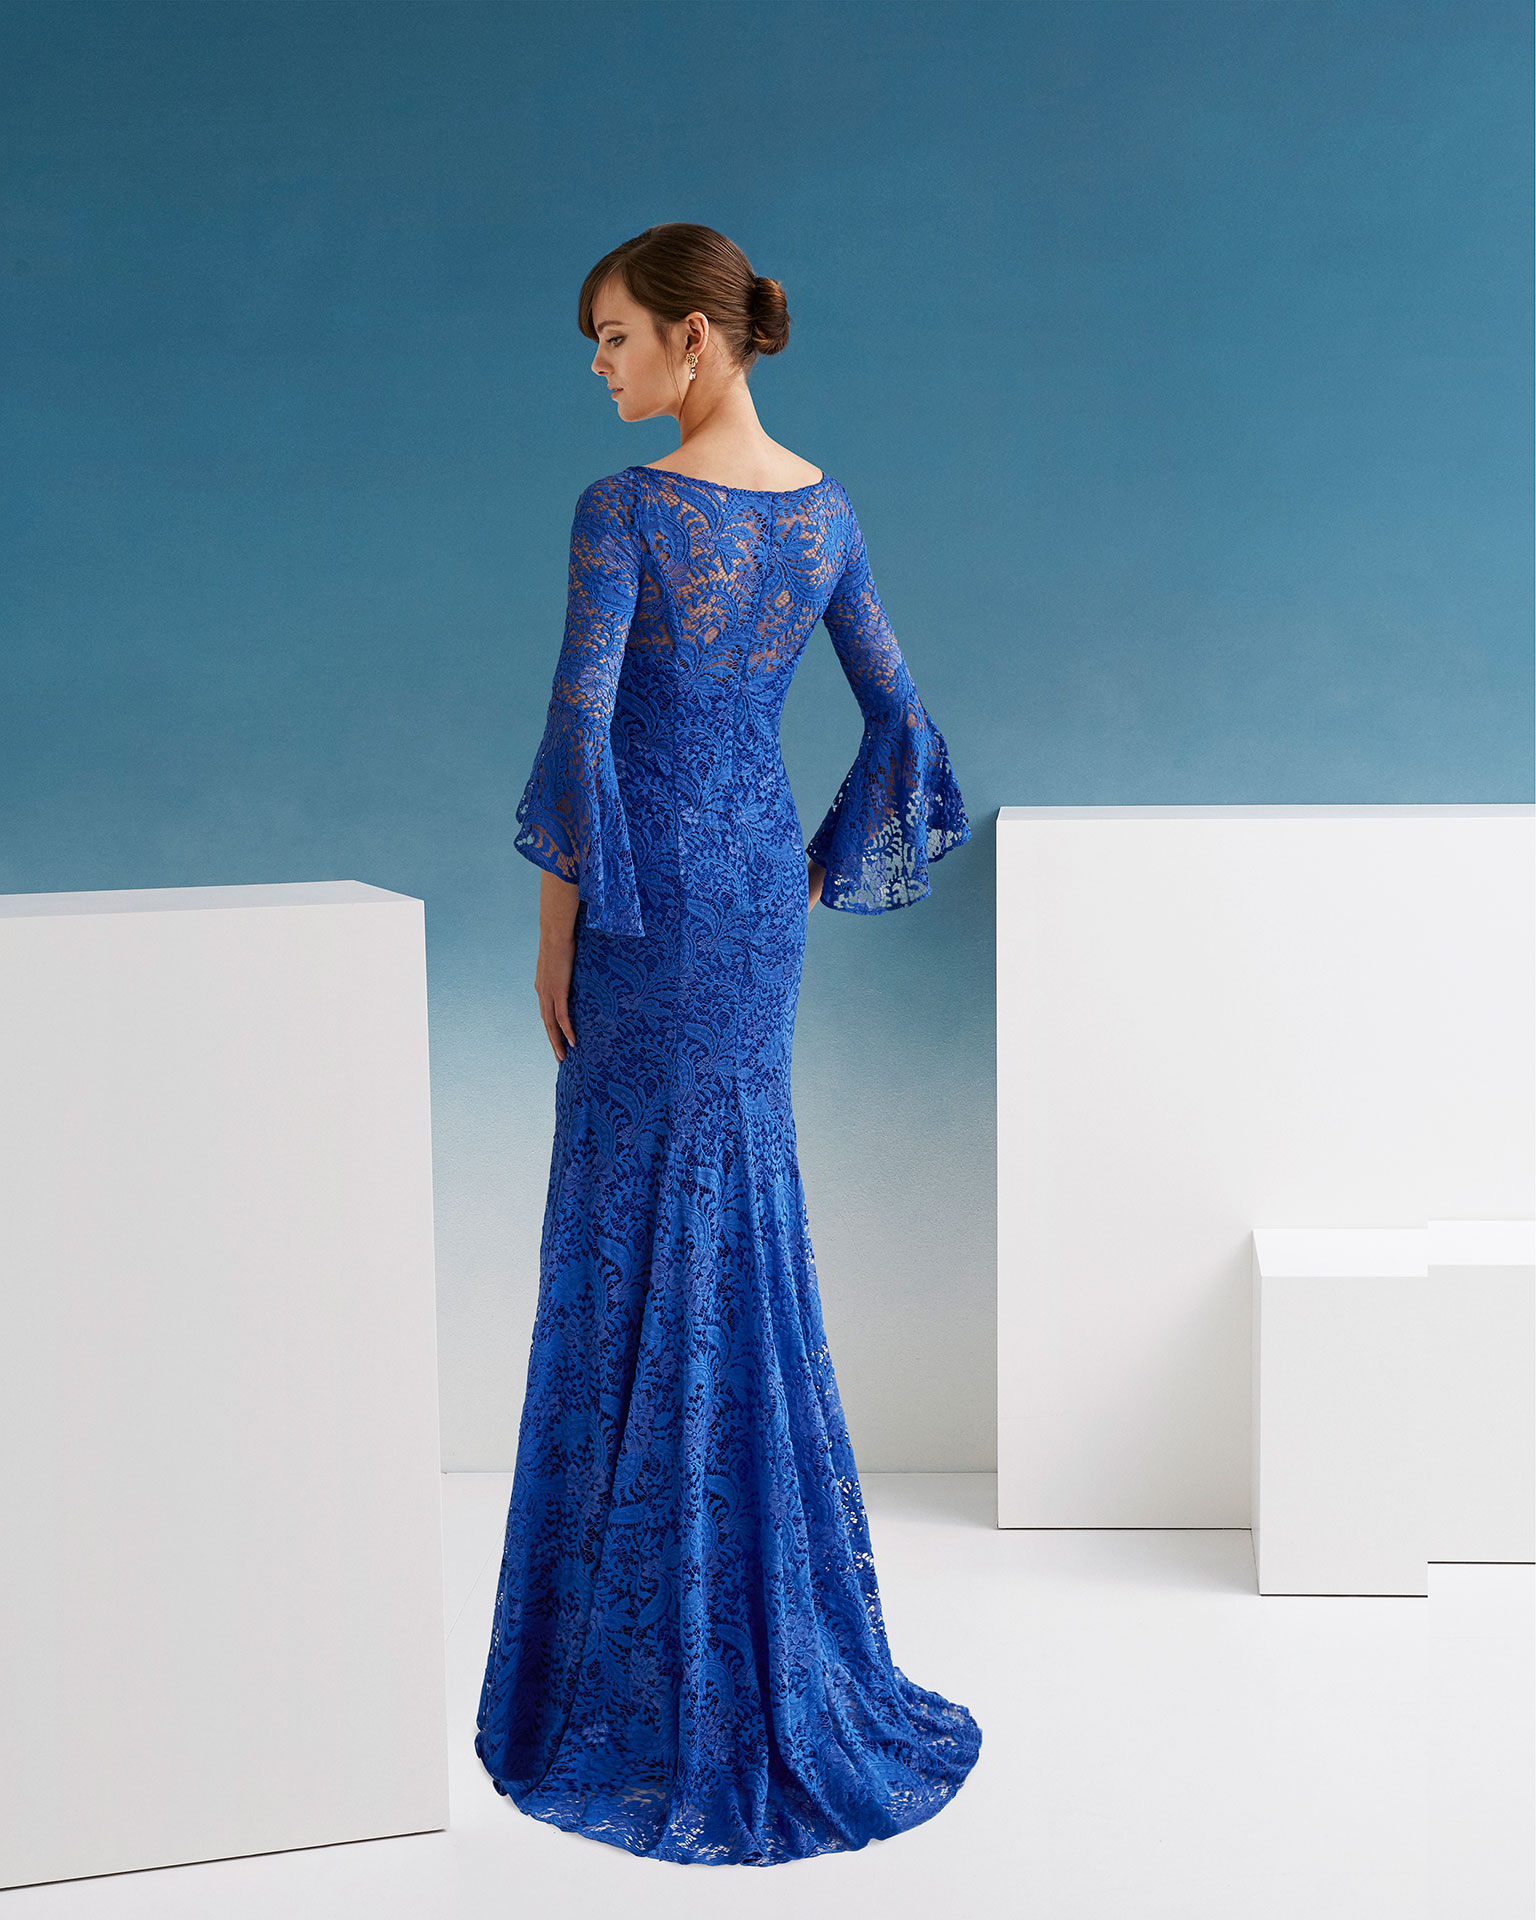 Ballgown-style lace cocktail dress. V-neckline and three-quarter sleeves with flounces. 2019 FIESTA AIRE BARCELONA Collection.